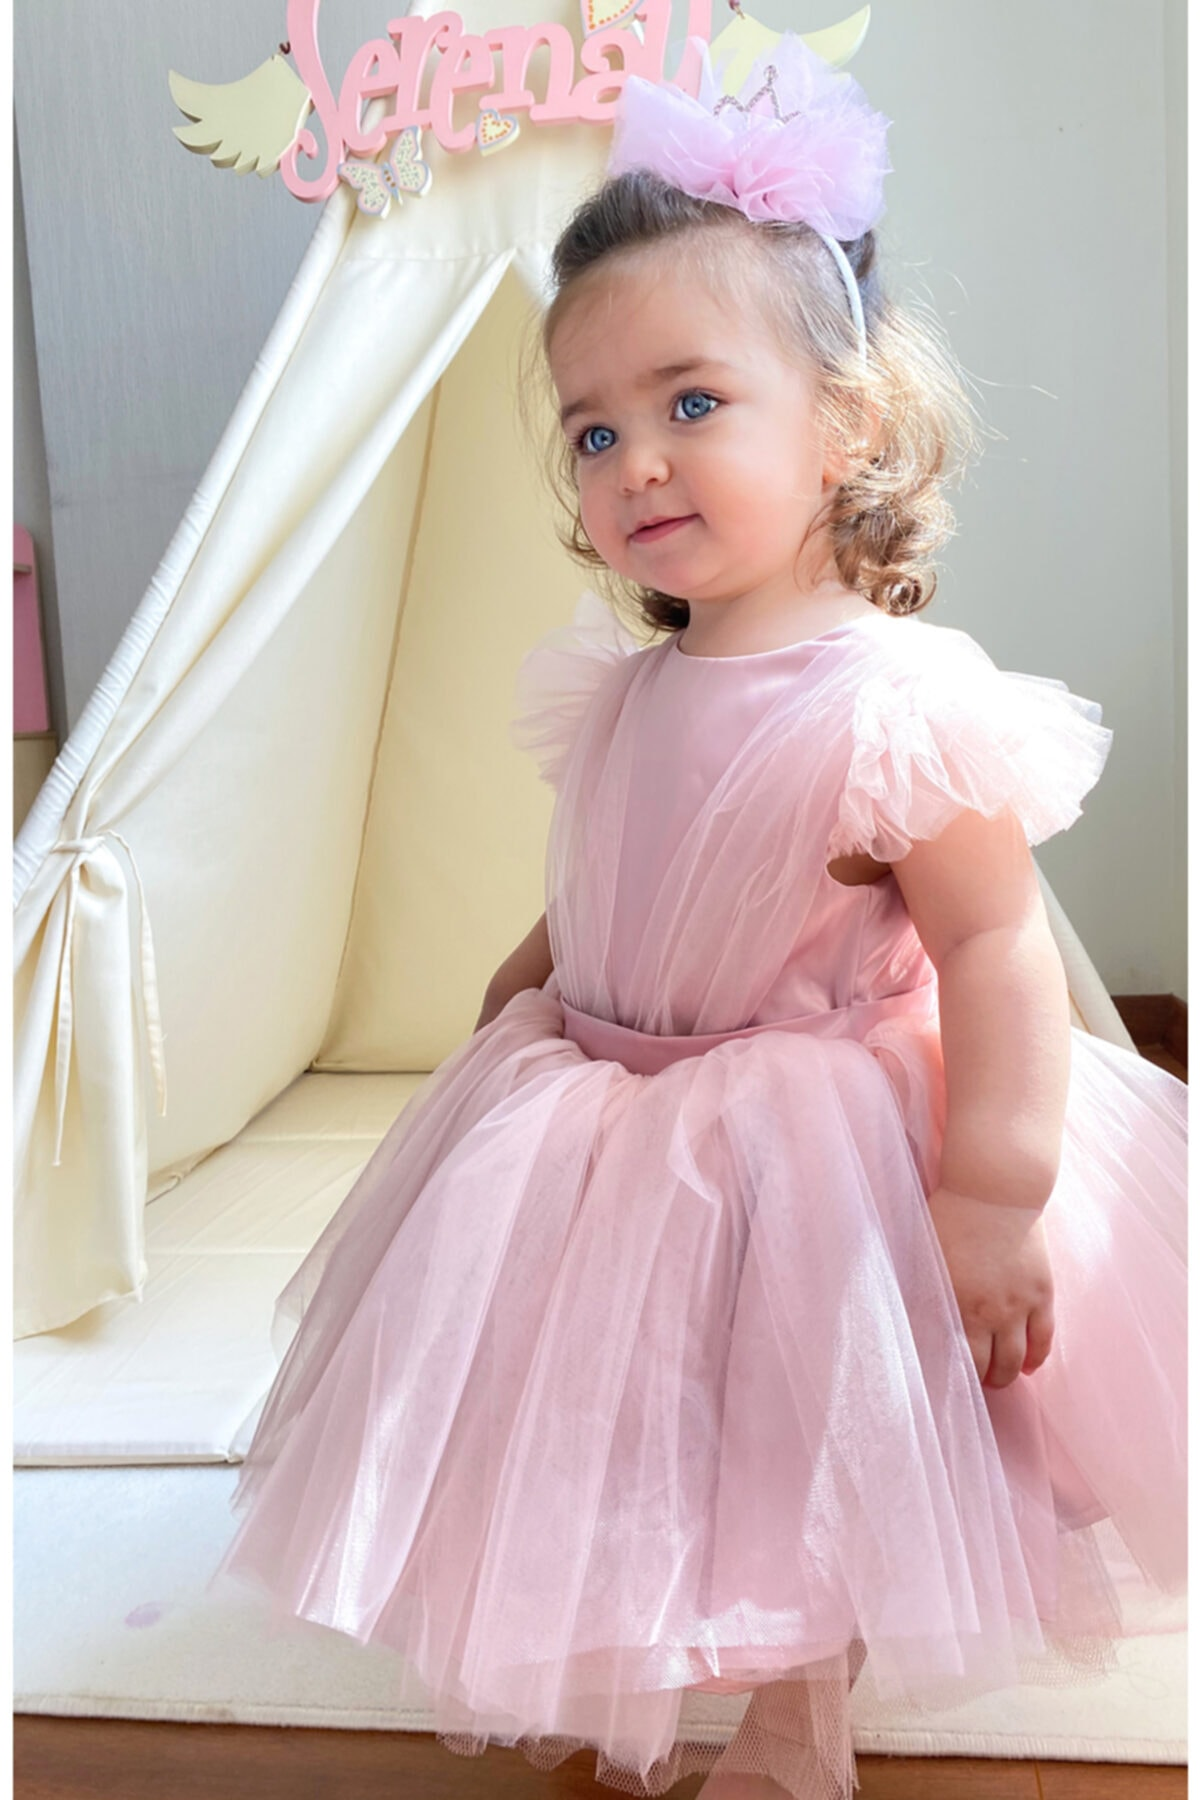 Flaneur Baby Girl Short Sleeve Pink Birthday Dress For Summer 2021 Special Occasion Premium Quality Cotton Lining